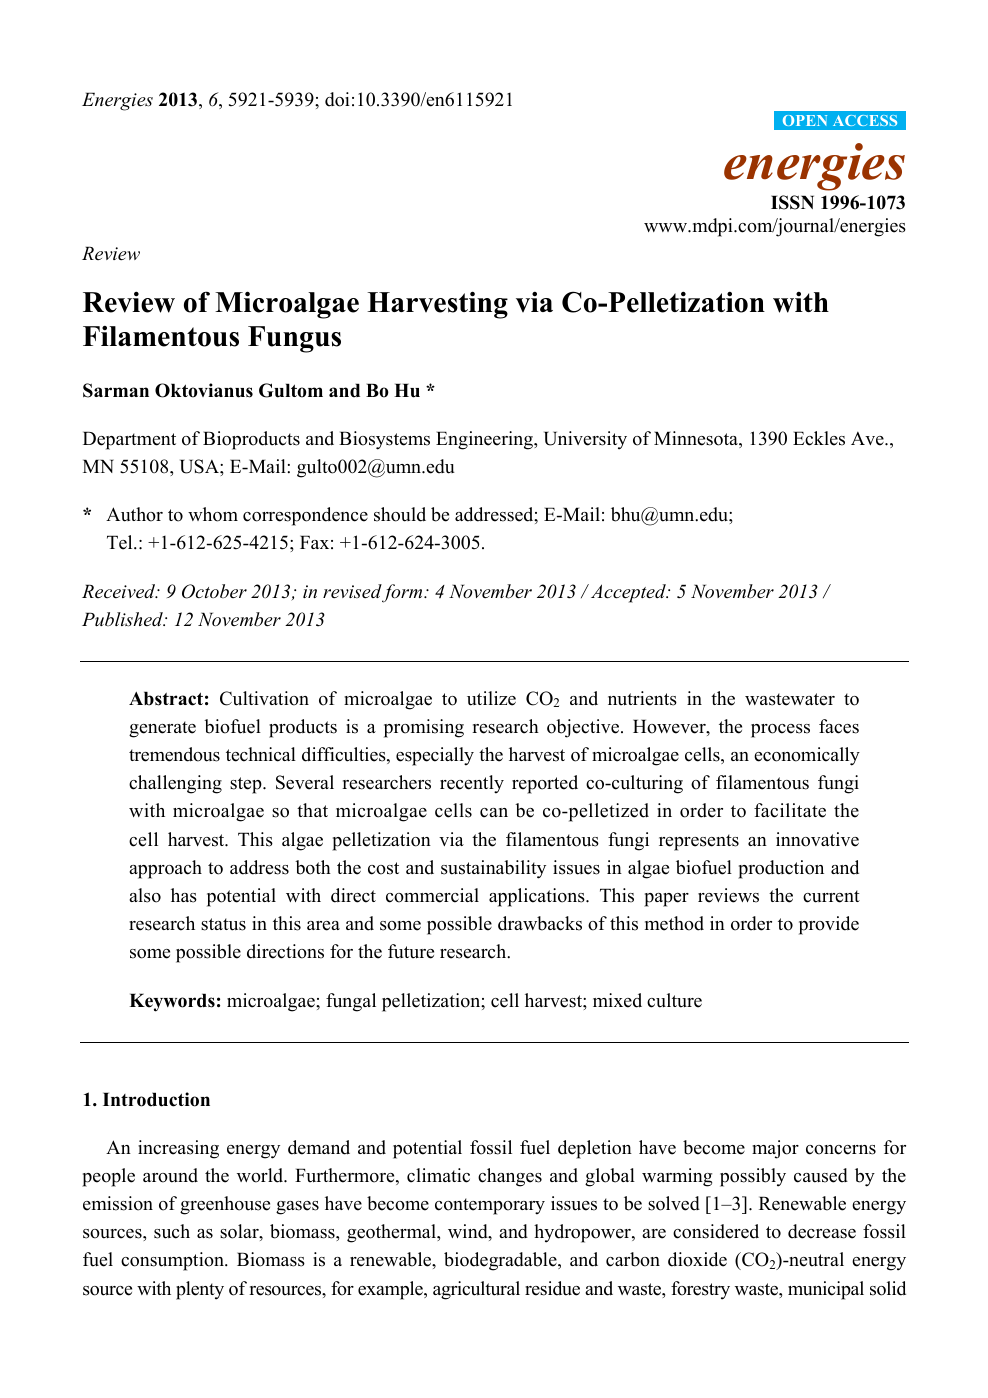 Review of Microalgae Harvesting via Co-Pelletization with